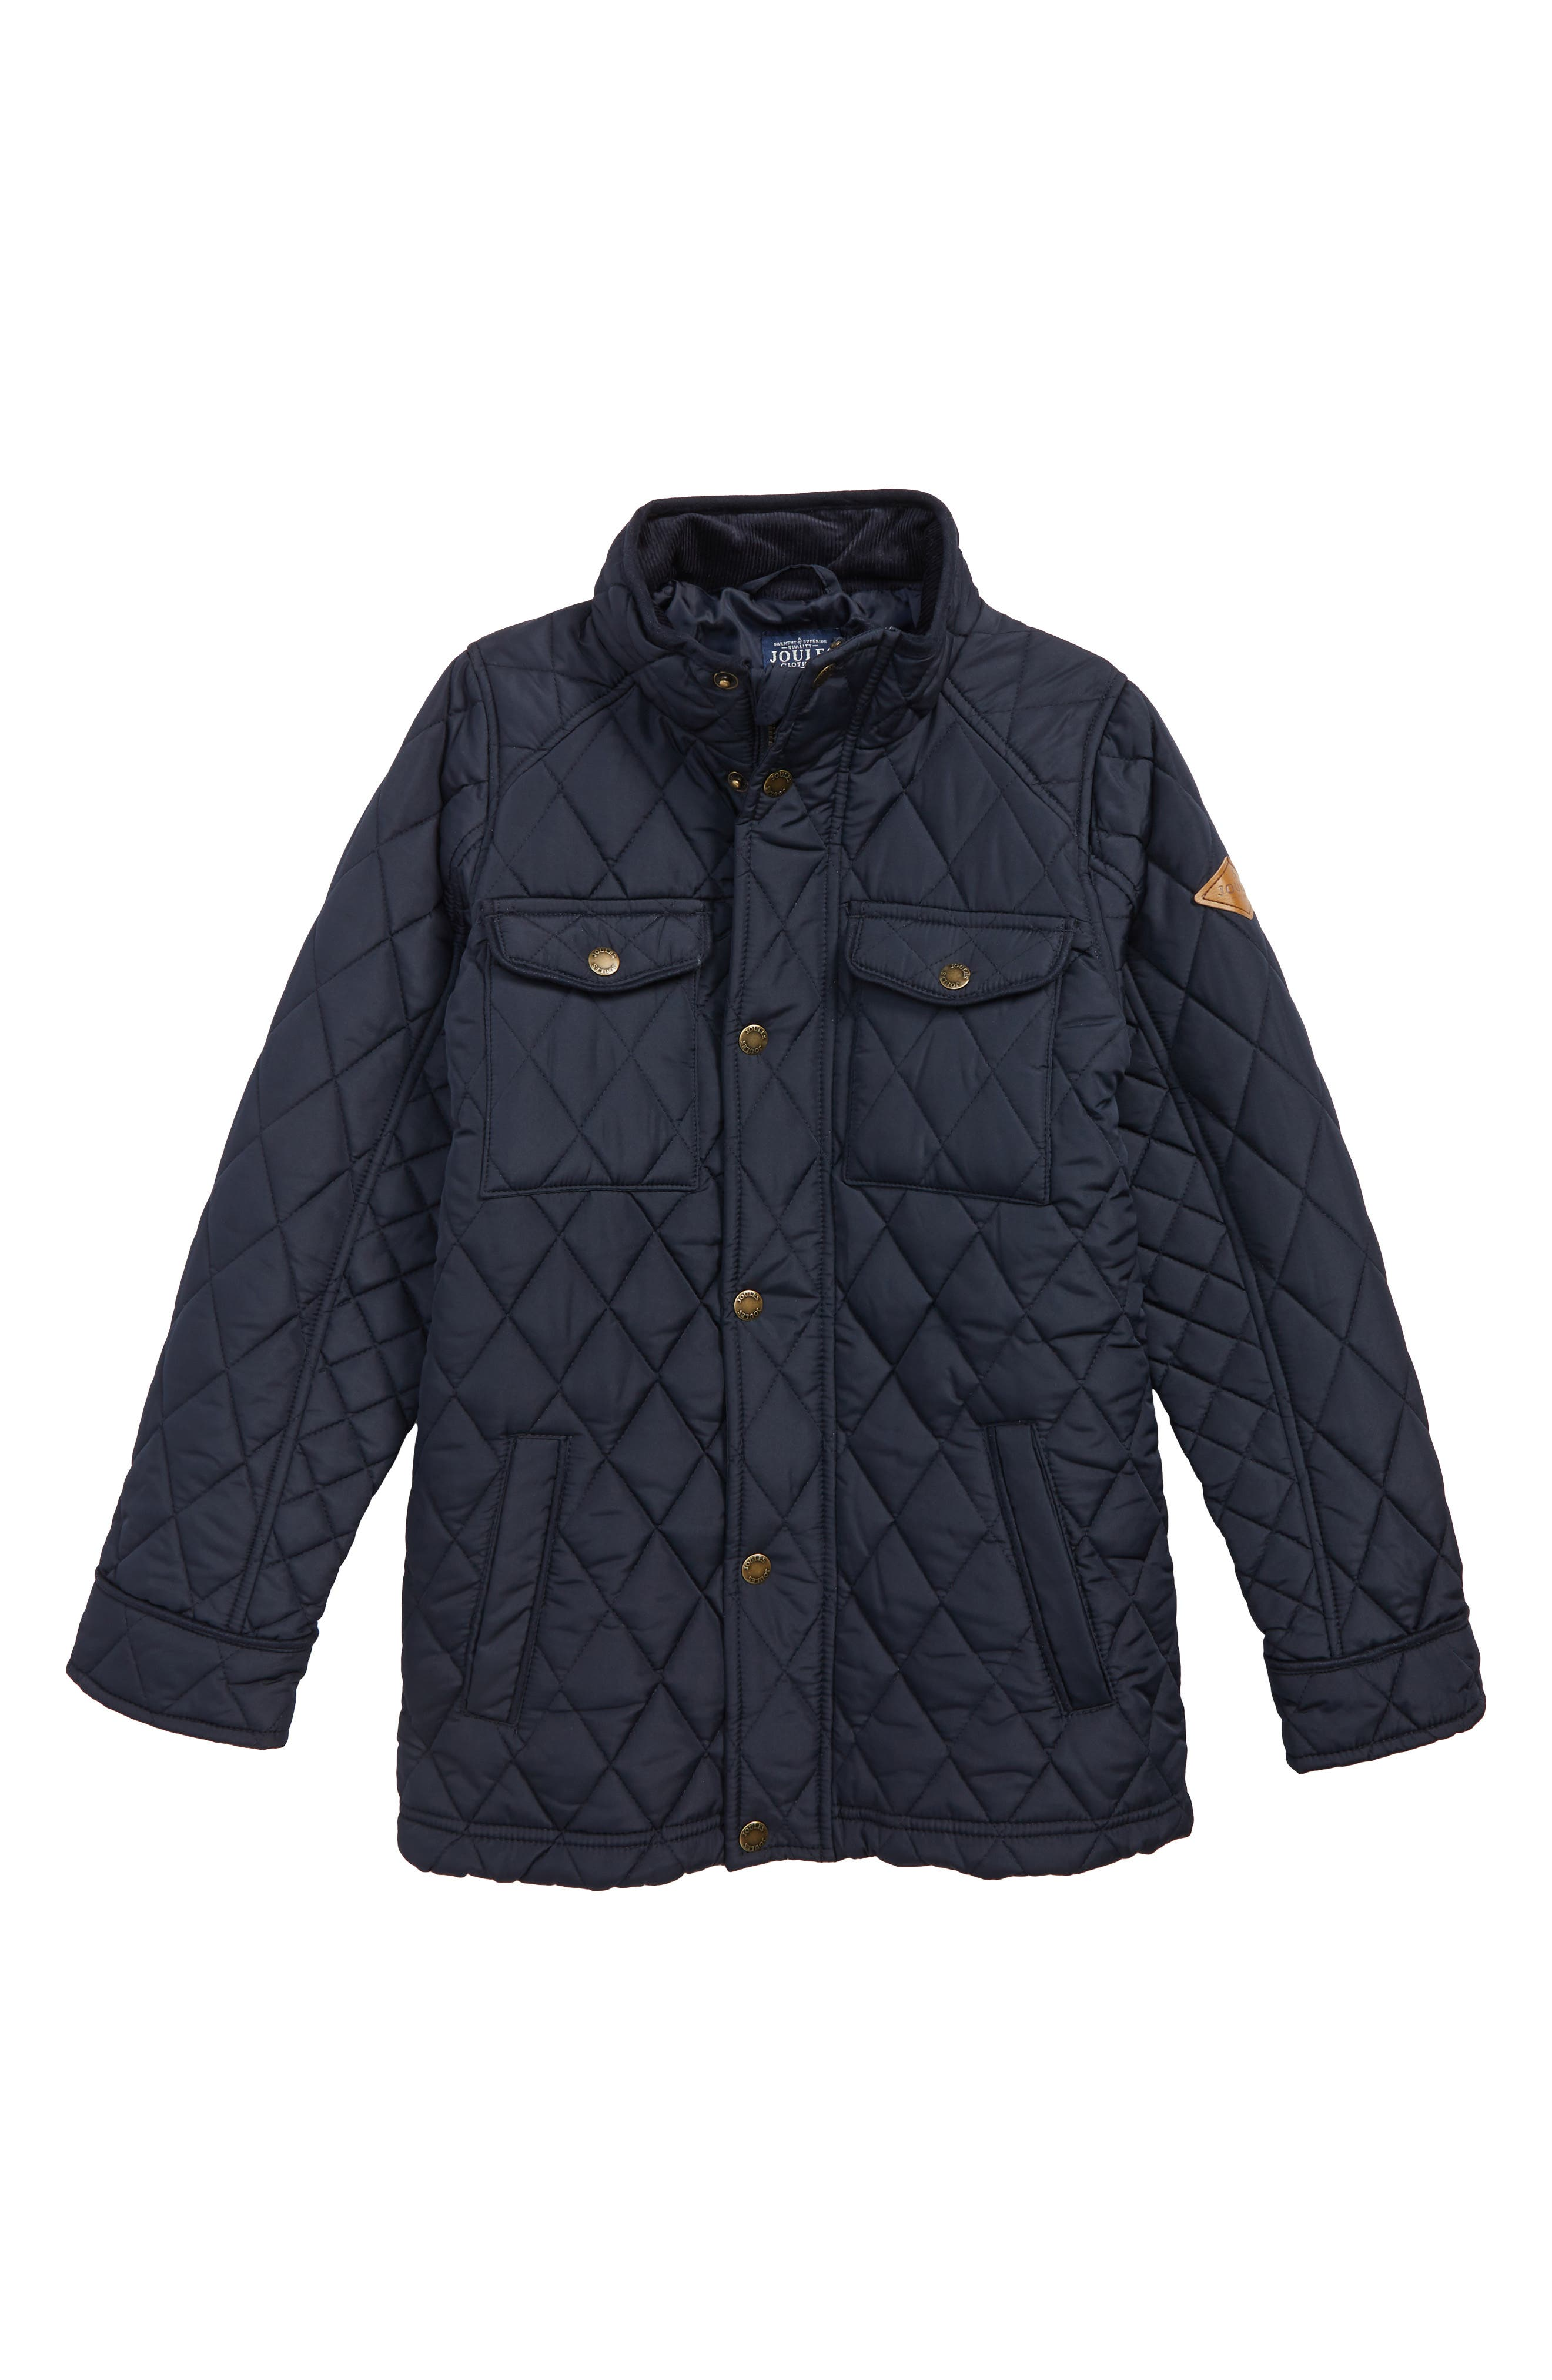 Stafford Quilted Jacket,                         Main,                         color, MARINE NAVY